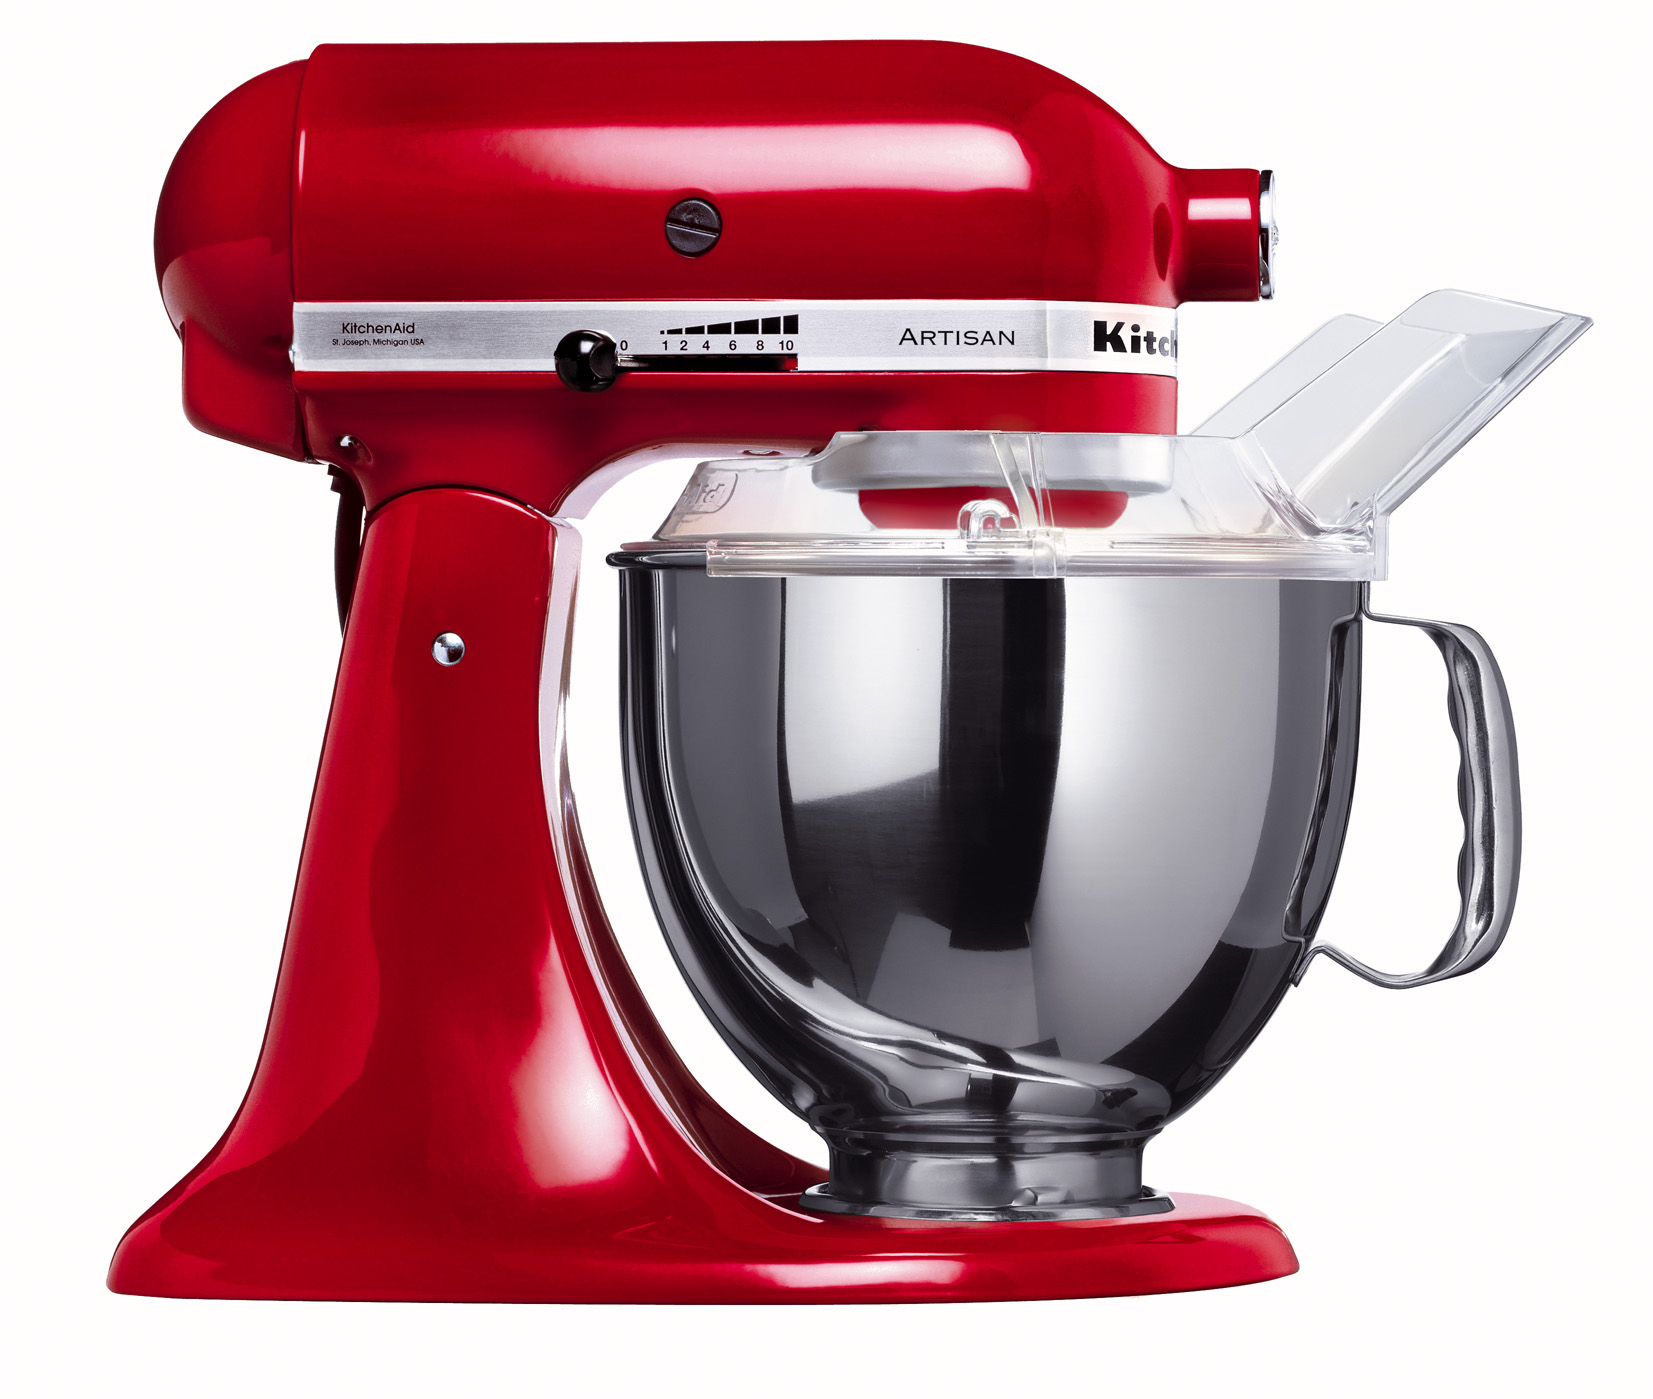 Kitchenaid hand mixers photo - 1